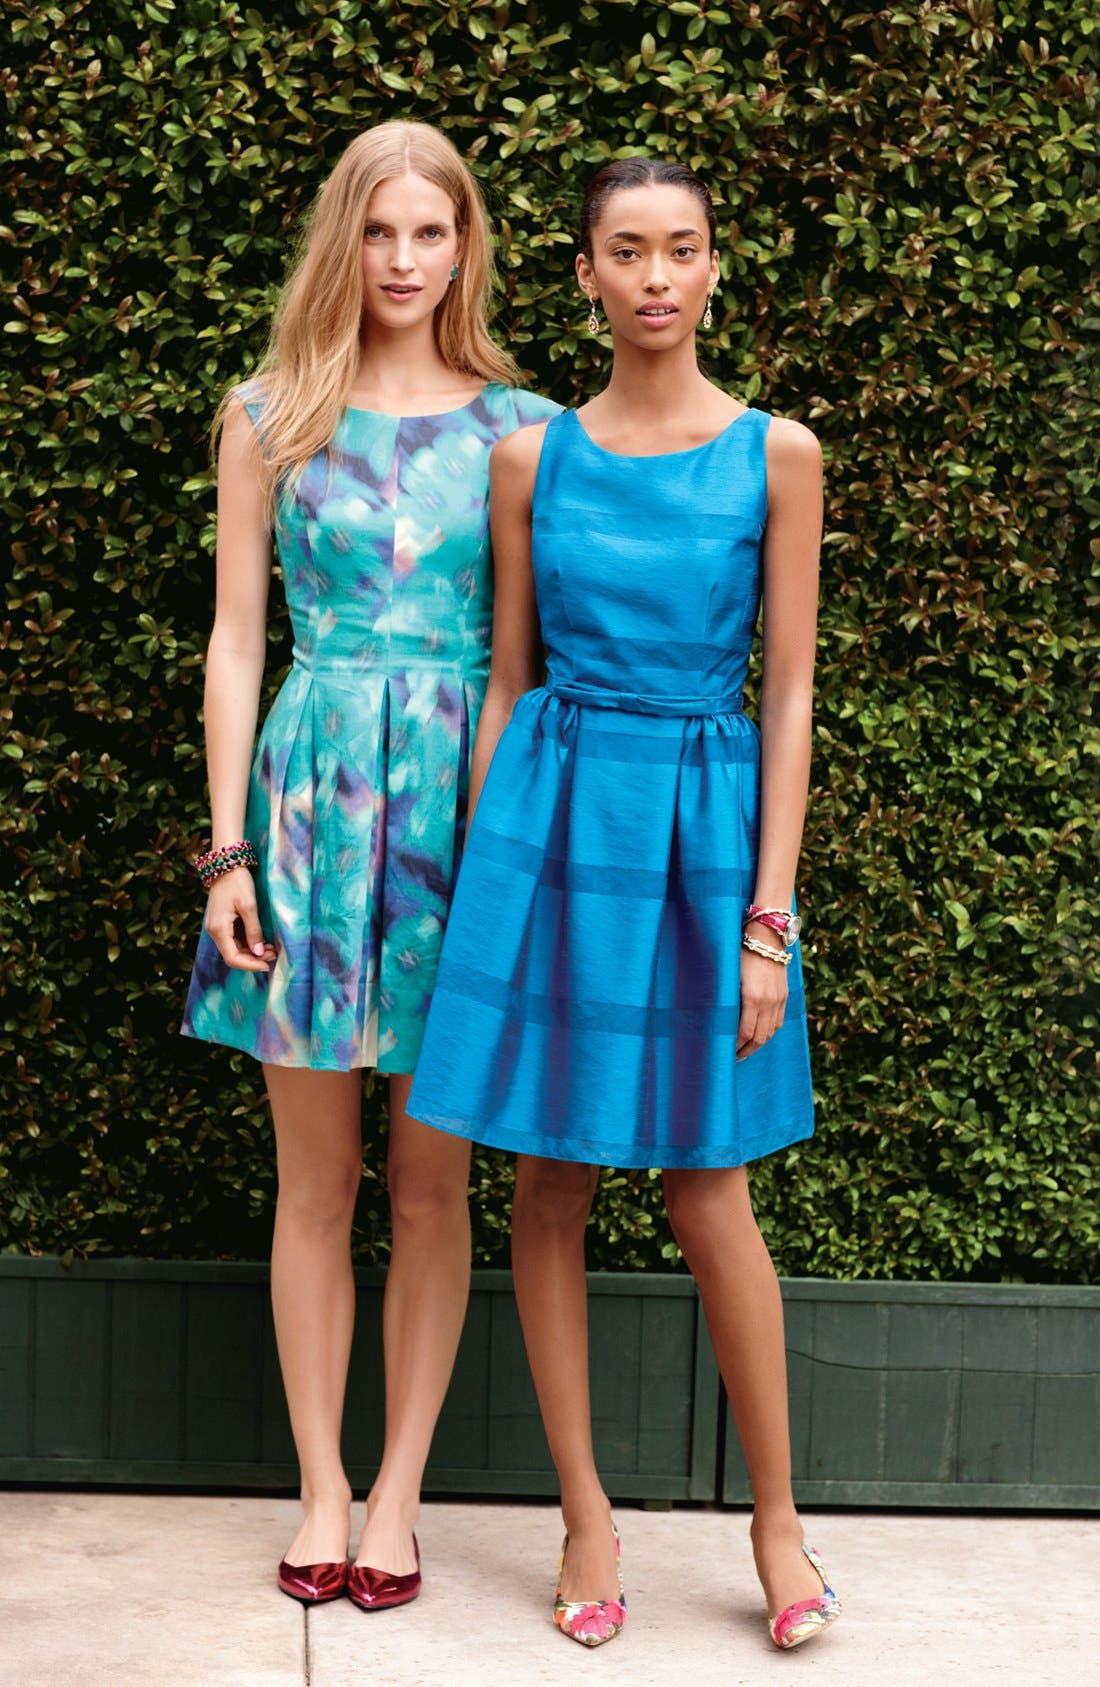 Alternate Image 1 Selected - Taylor Dresses Fit & Flare Dress & Accessories